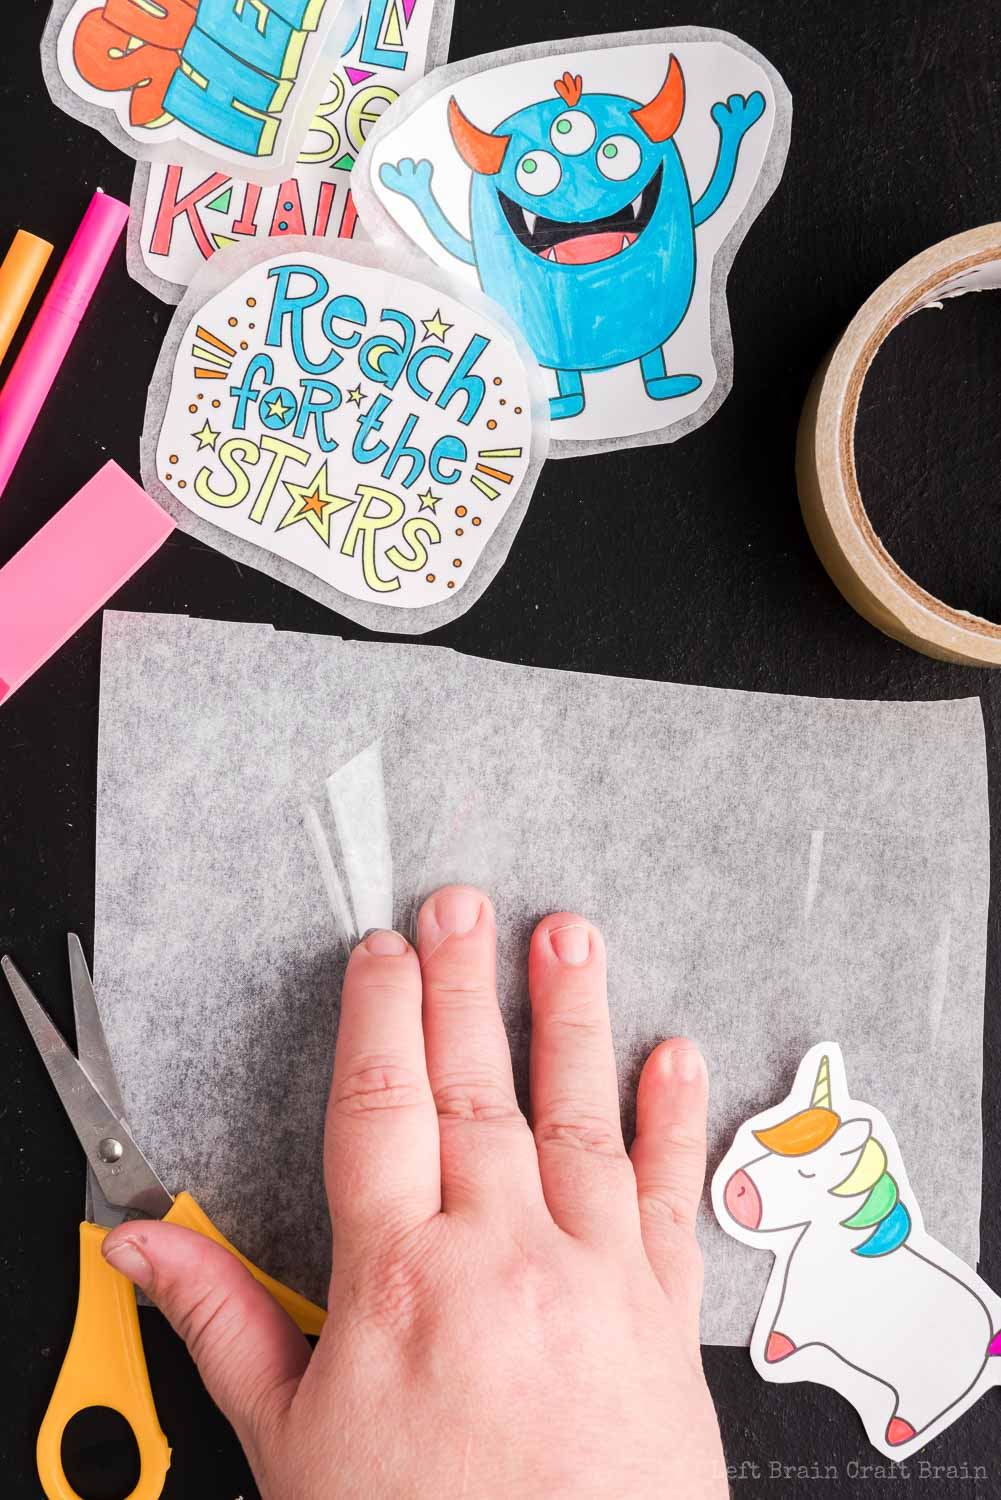 Place first layer of tape for stickers - Make your own DIY stickers with a super easy process using basic supplies. Kids will love this activity. They're fun to add to presents, too.